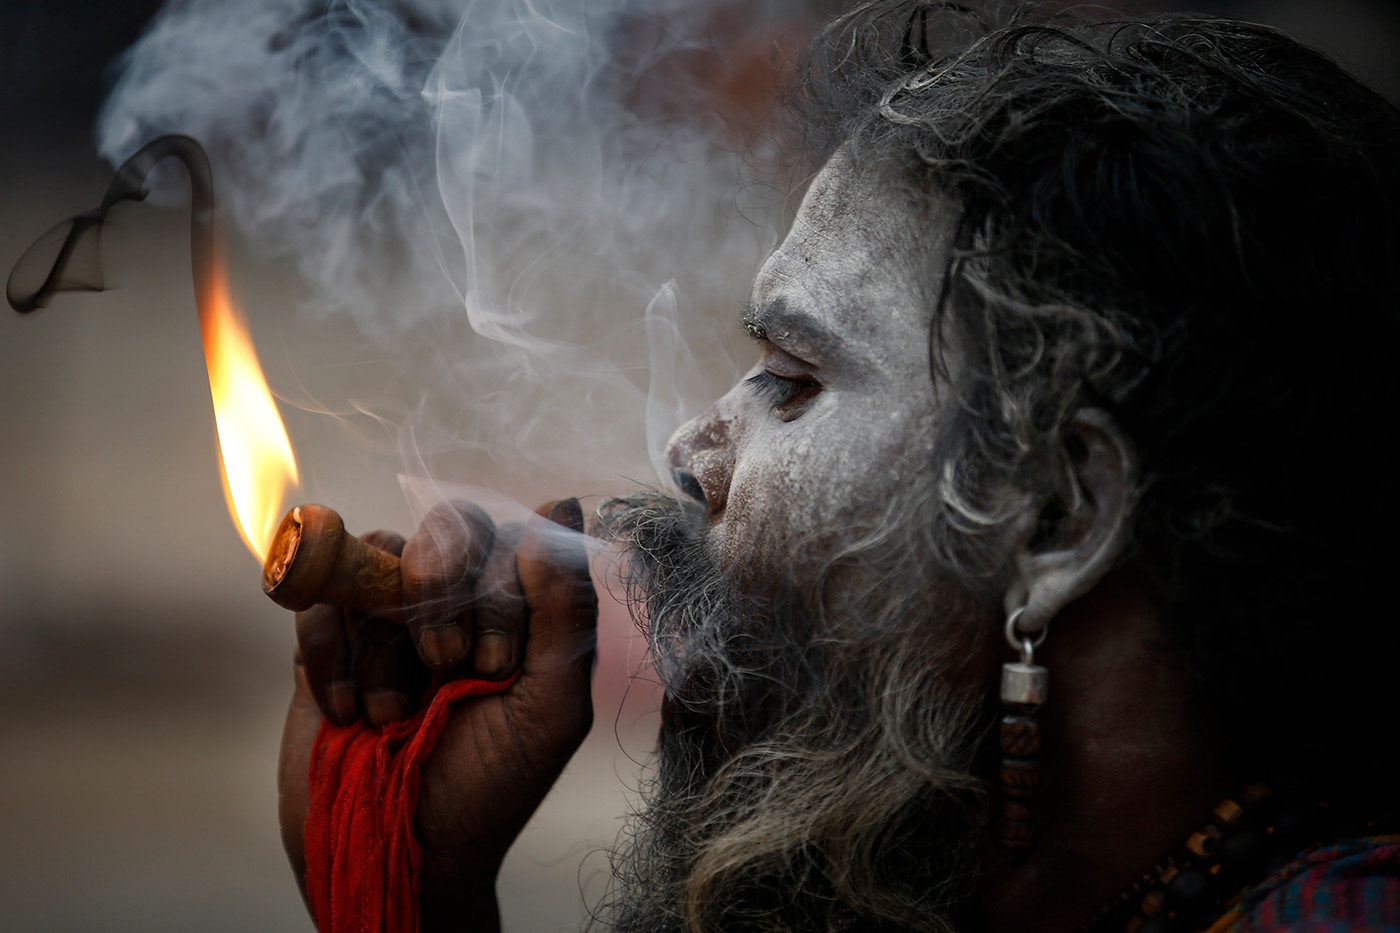 Shiva Chillum Hd Wallpaper Maha Shivaratri Festival On Behance